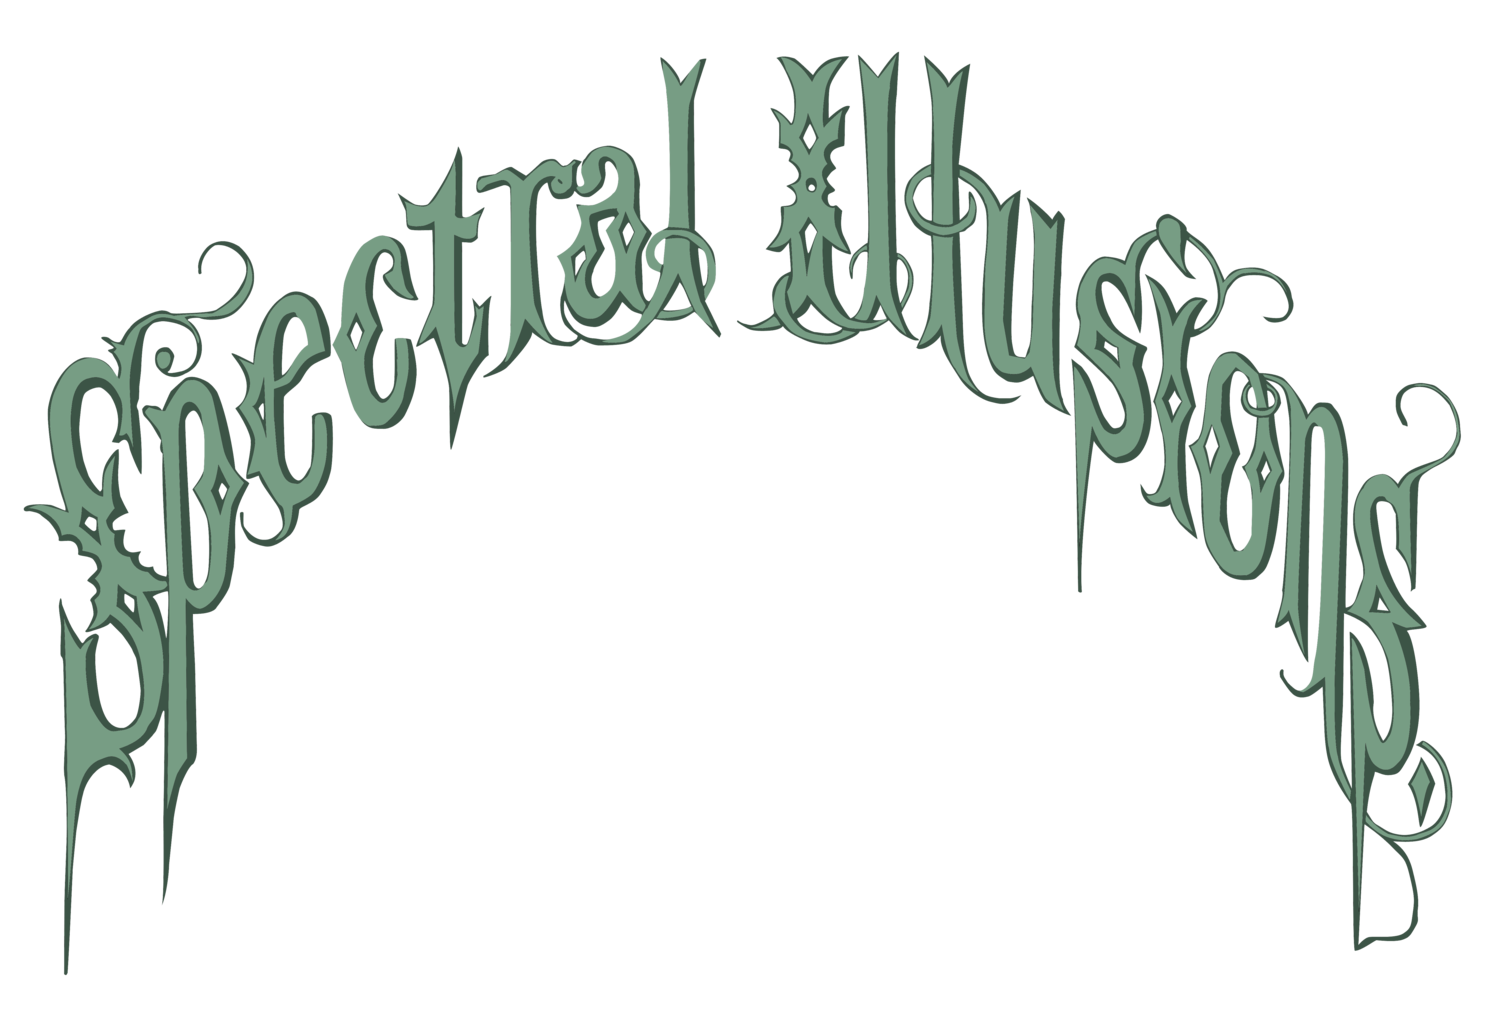 Spectral Illusions